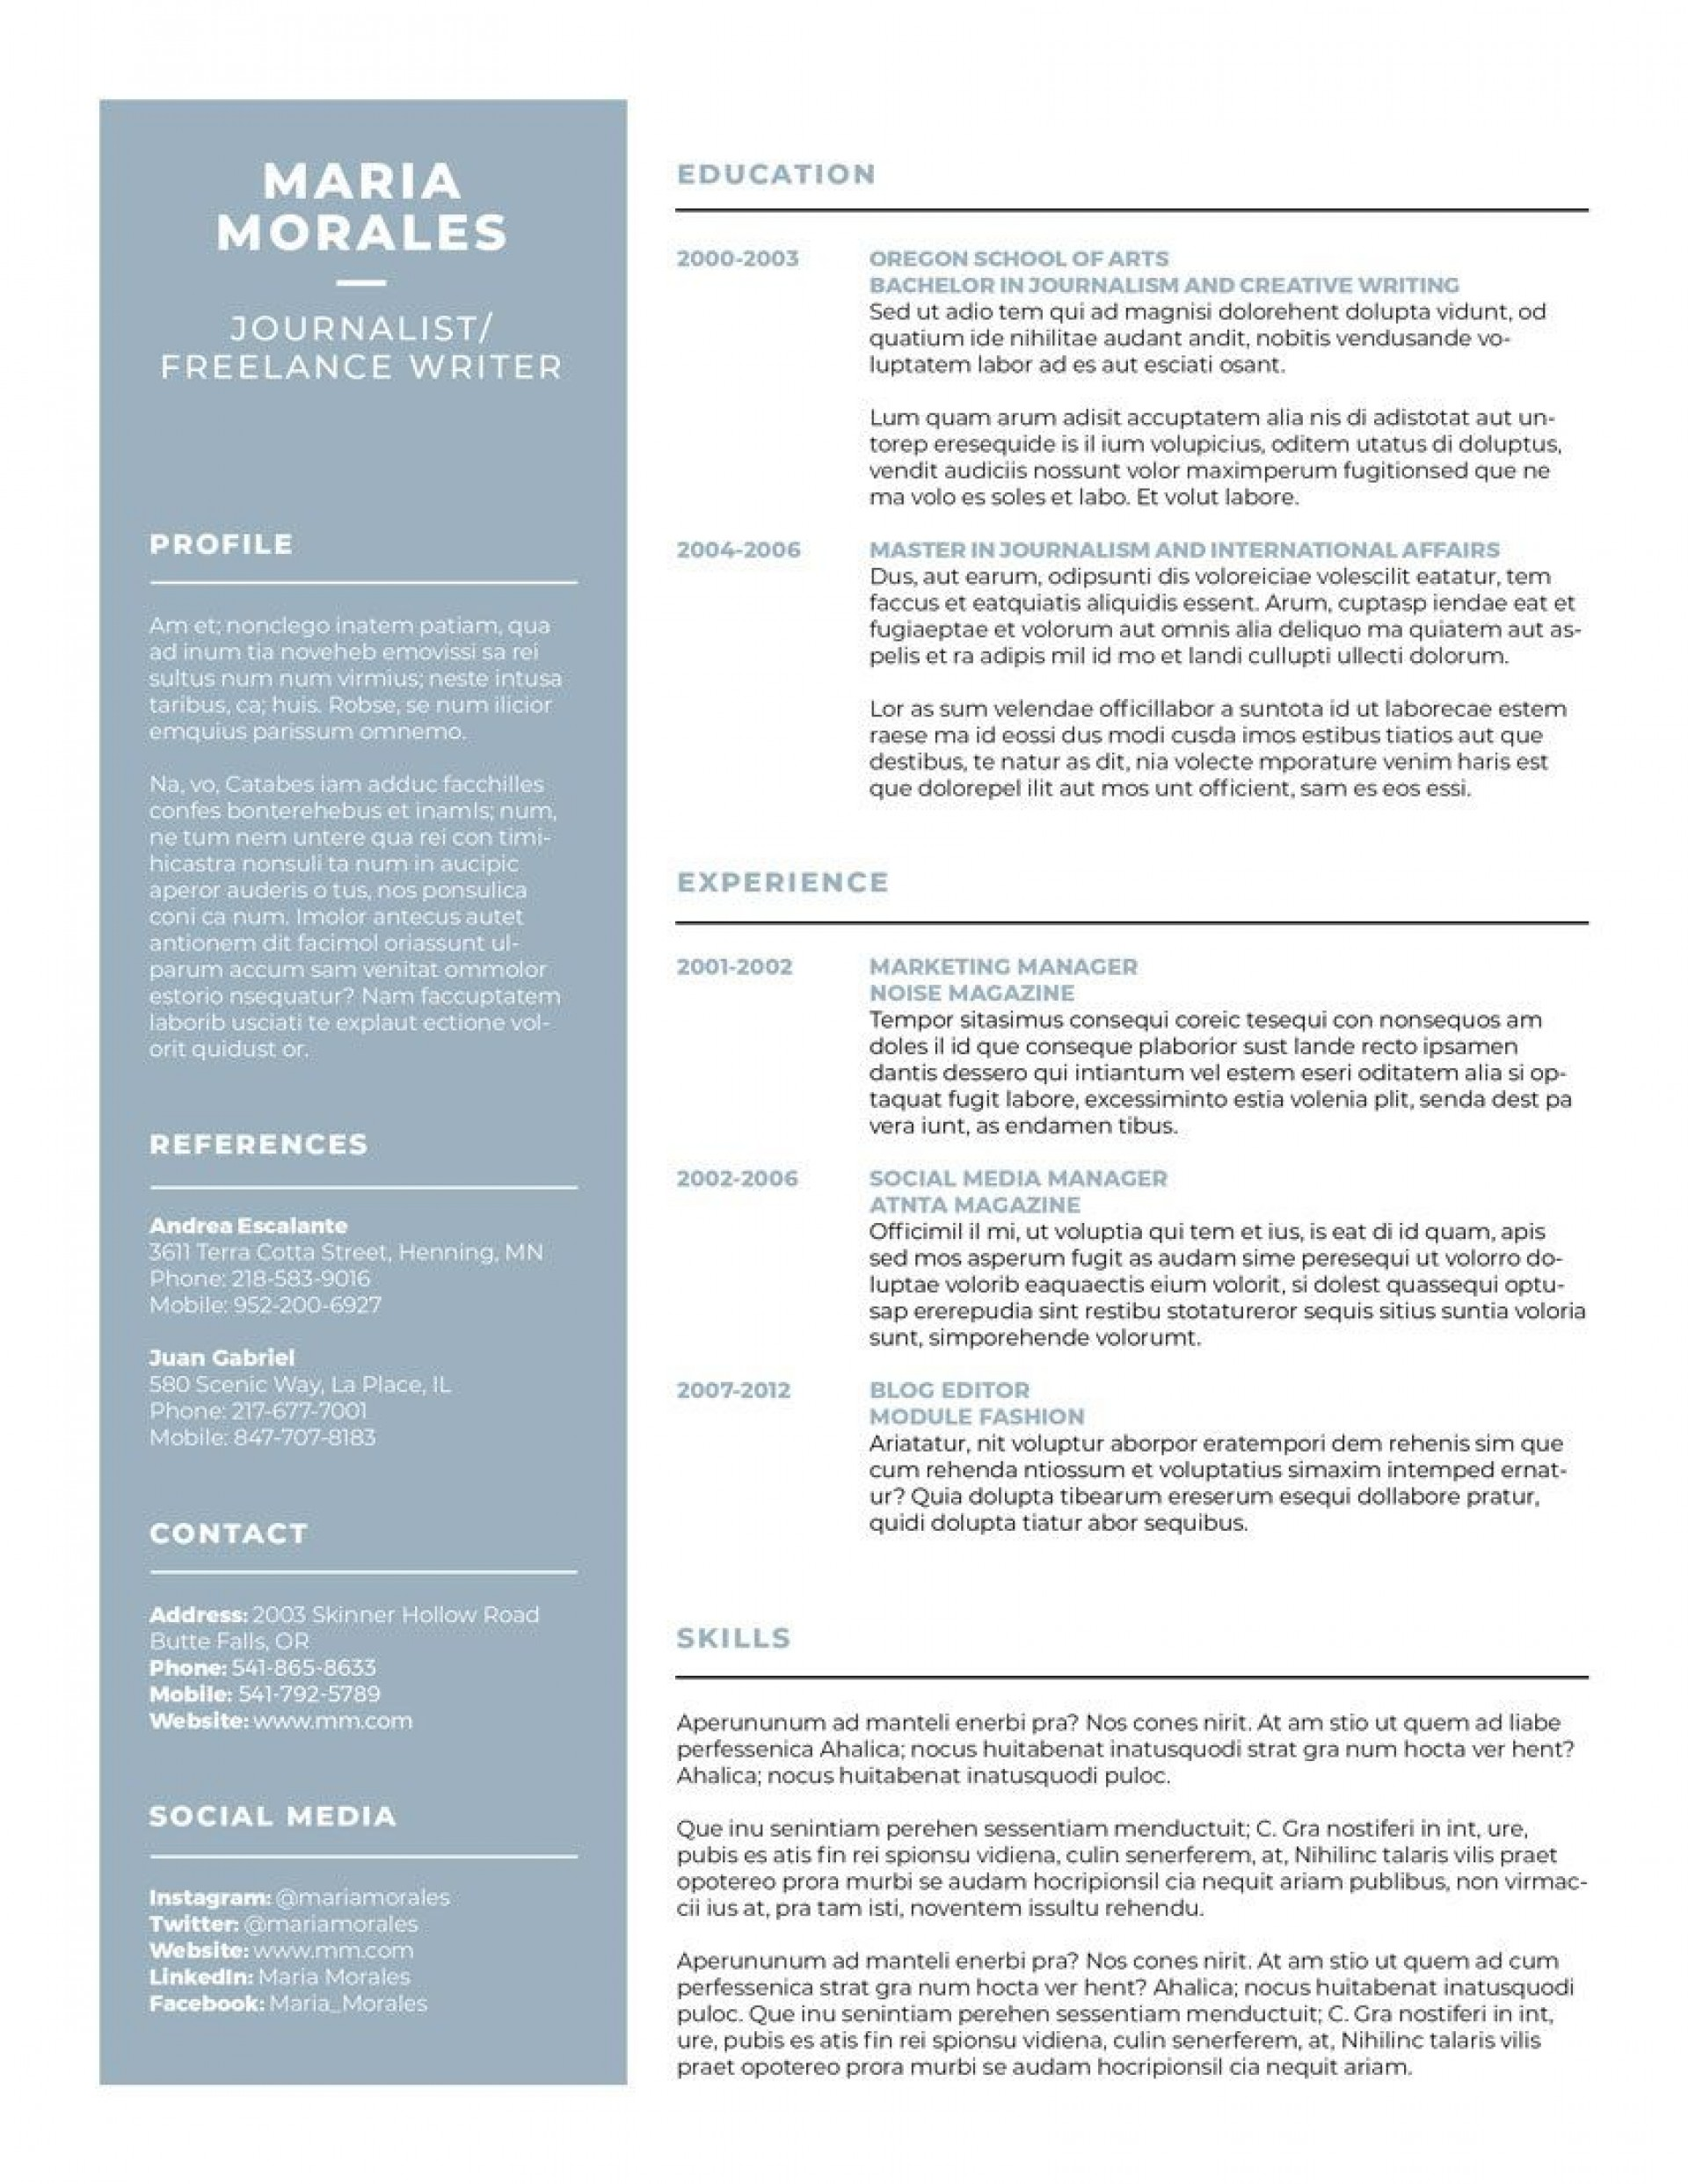 008 Awful Make A Resume Template Free High Resolution  How To Write Create Format Writing1920